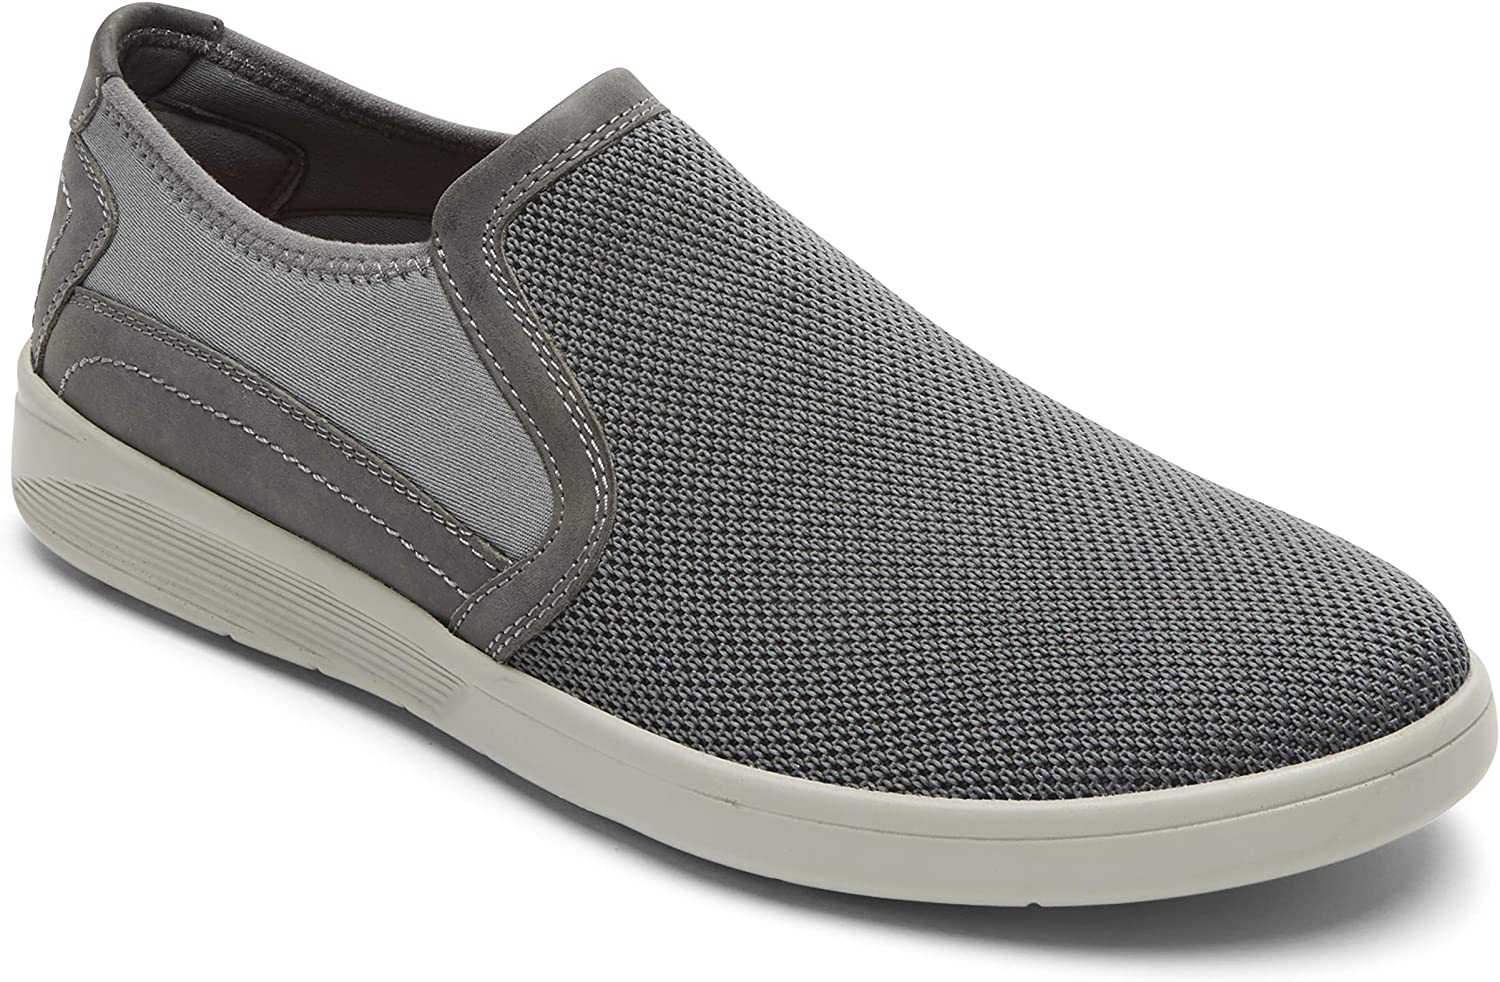 Rockport Men's Limited time cheap sale Caldwell Twin Slipon Gore Sneaker Many popular brands